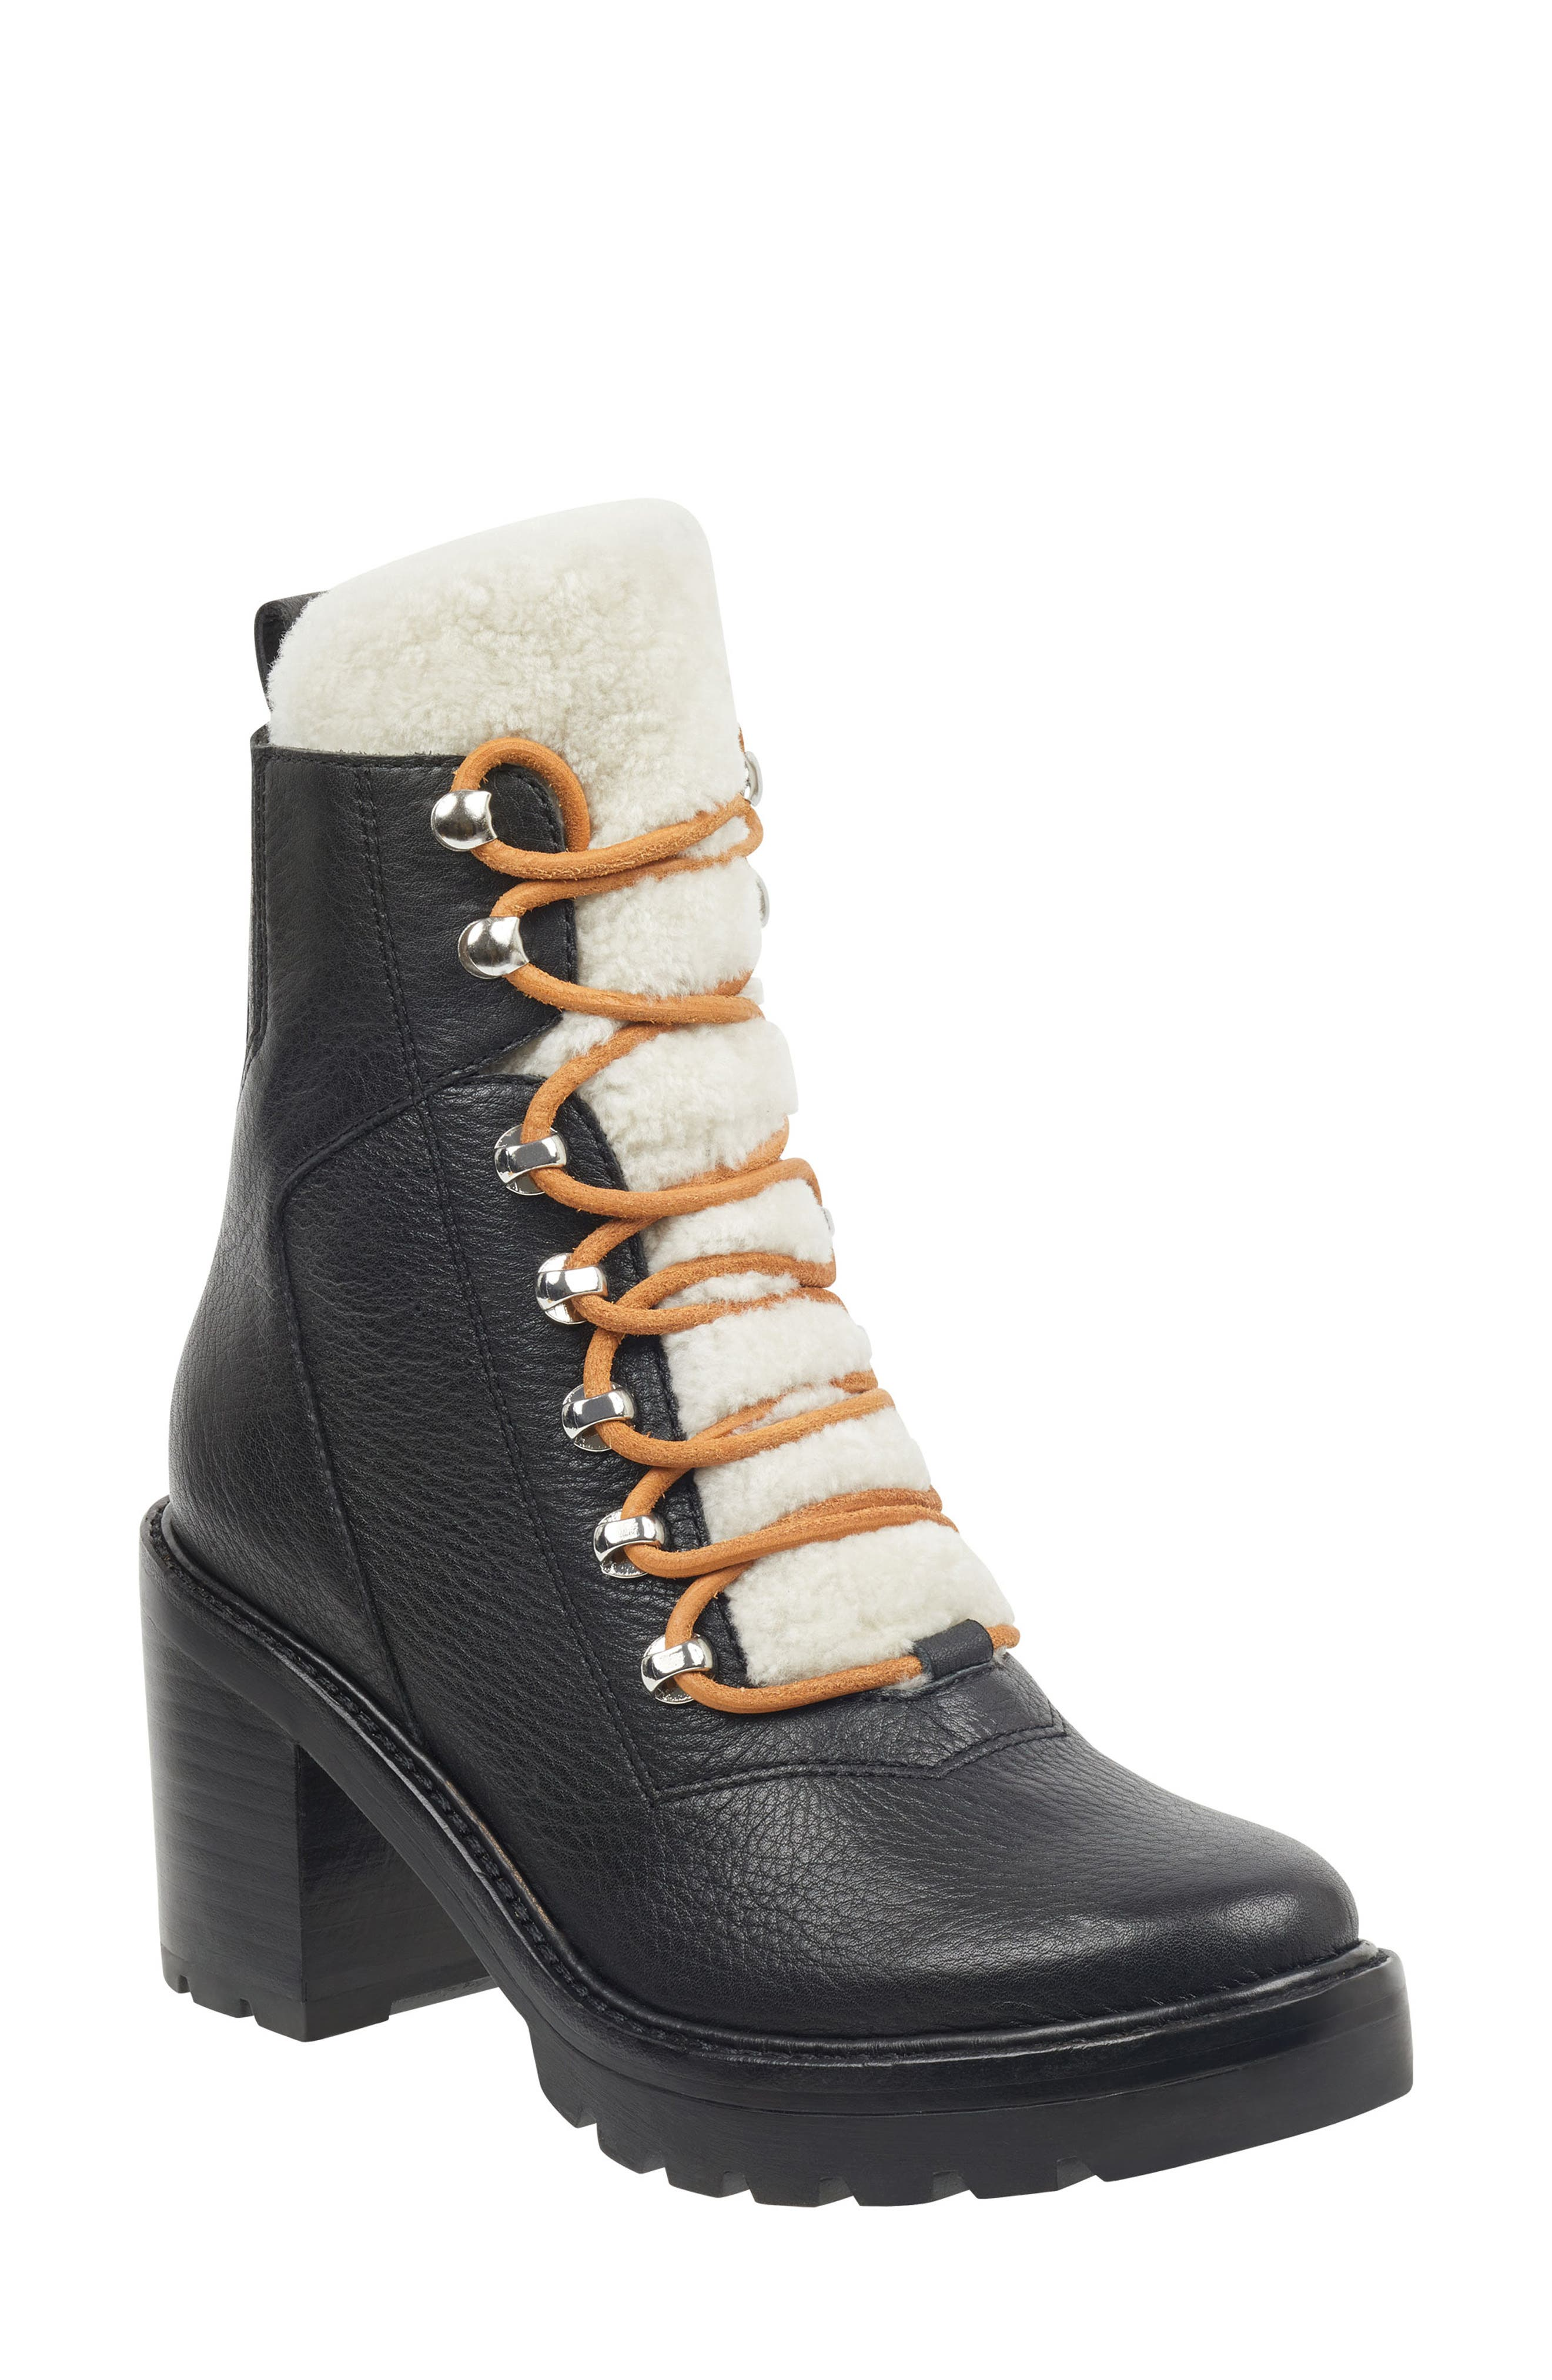 Denise Combat Boot,                             Main thumbnail 1, color,                             BLACK/ NATURAL LEATHER